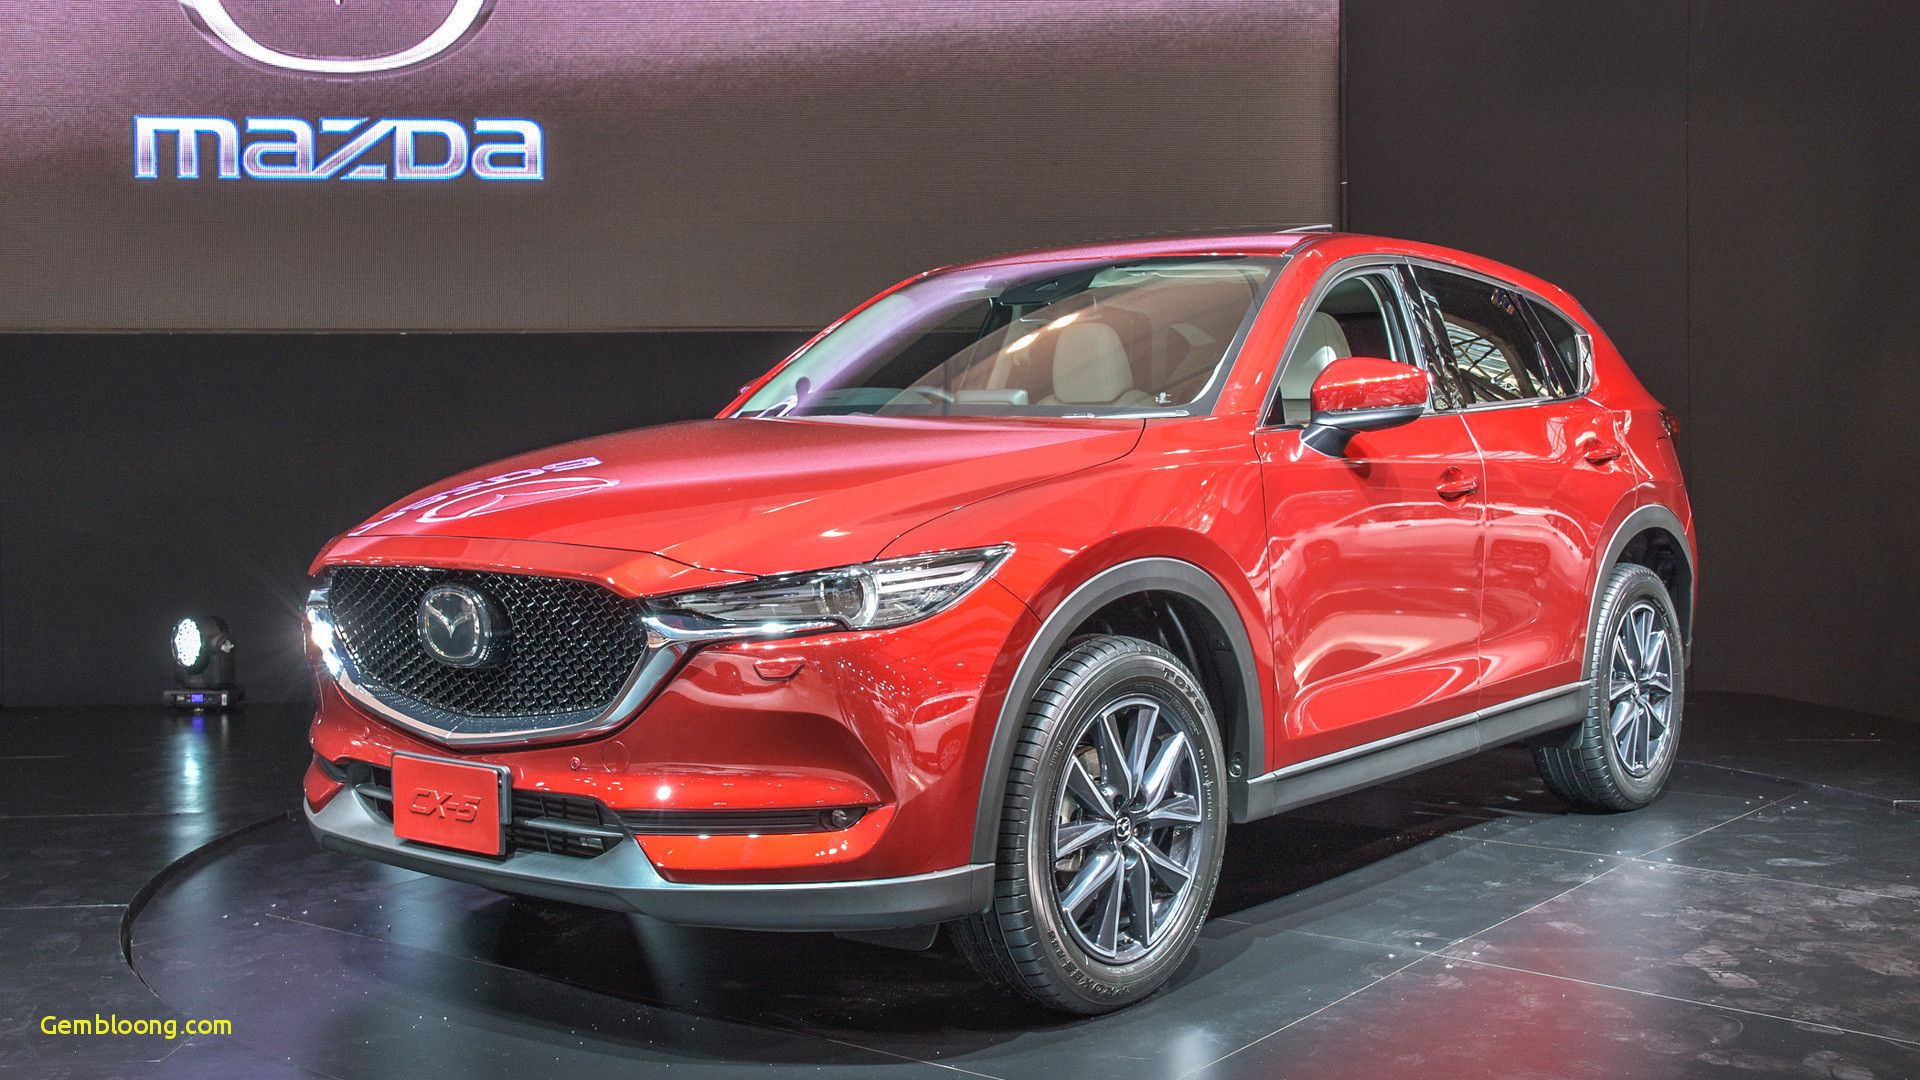 55 Beautiful 2020 Mazda Cx 5 Mazda Mazda Suv Lexus Sports Car